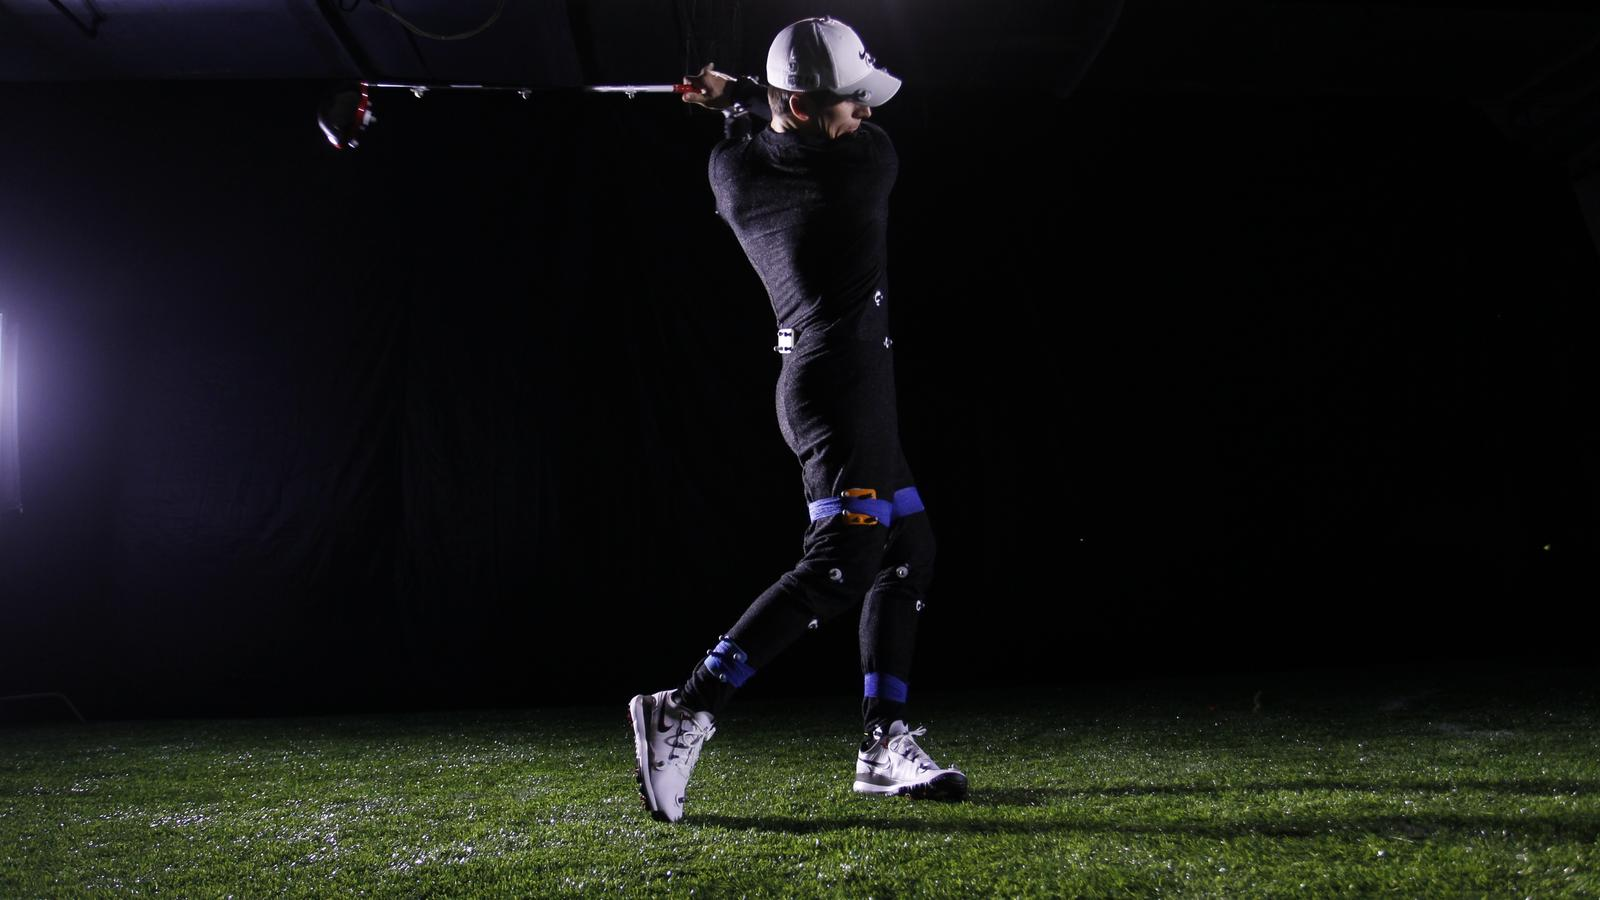 nsrl-motion-capture-golf-follow